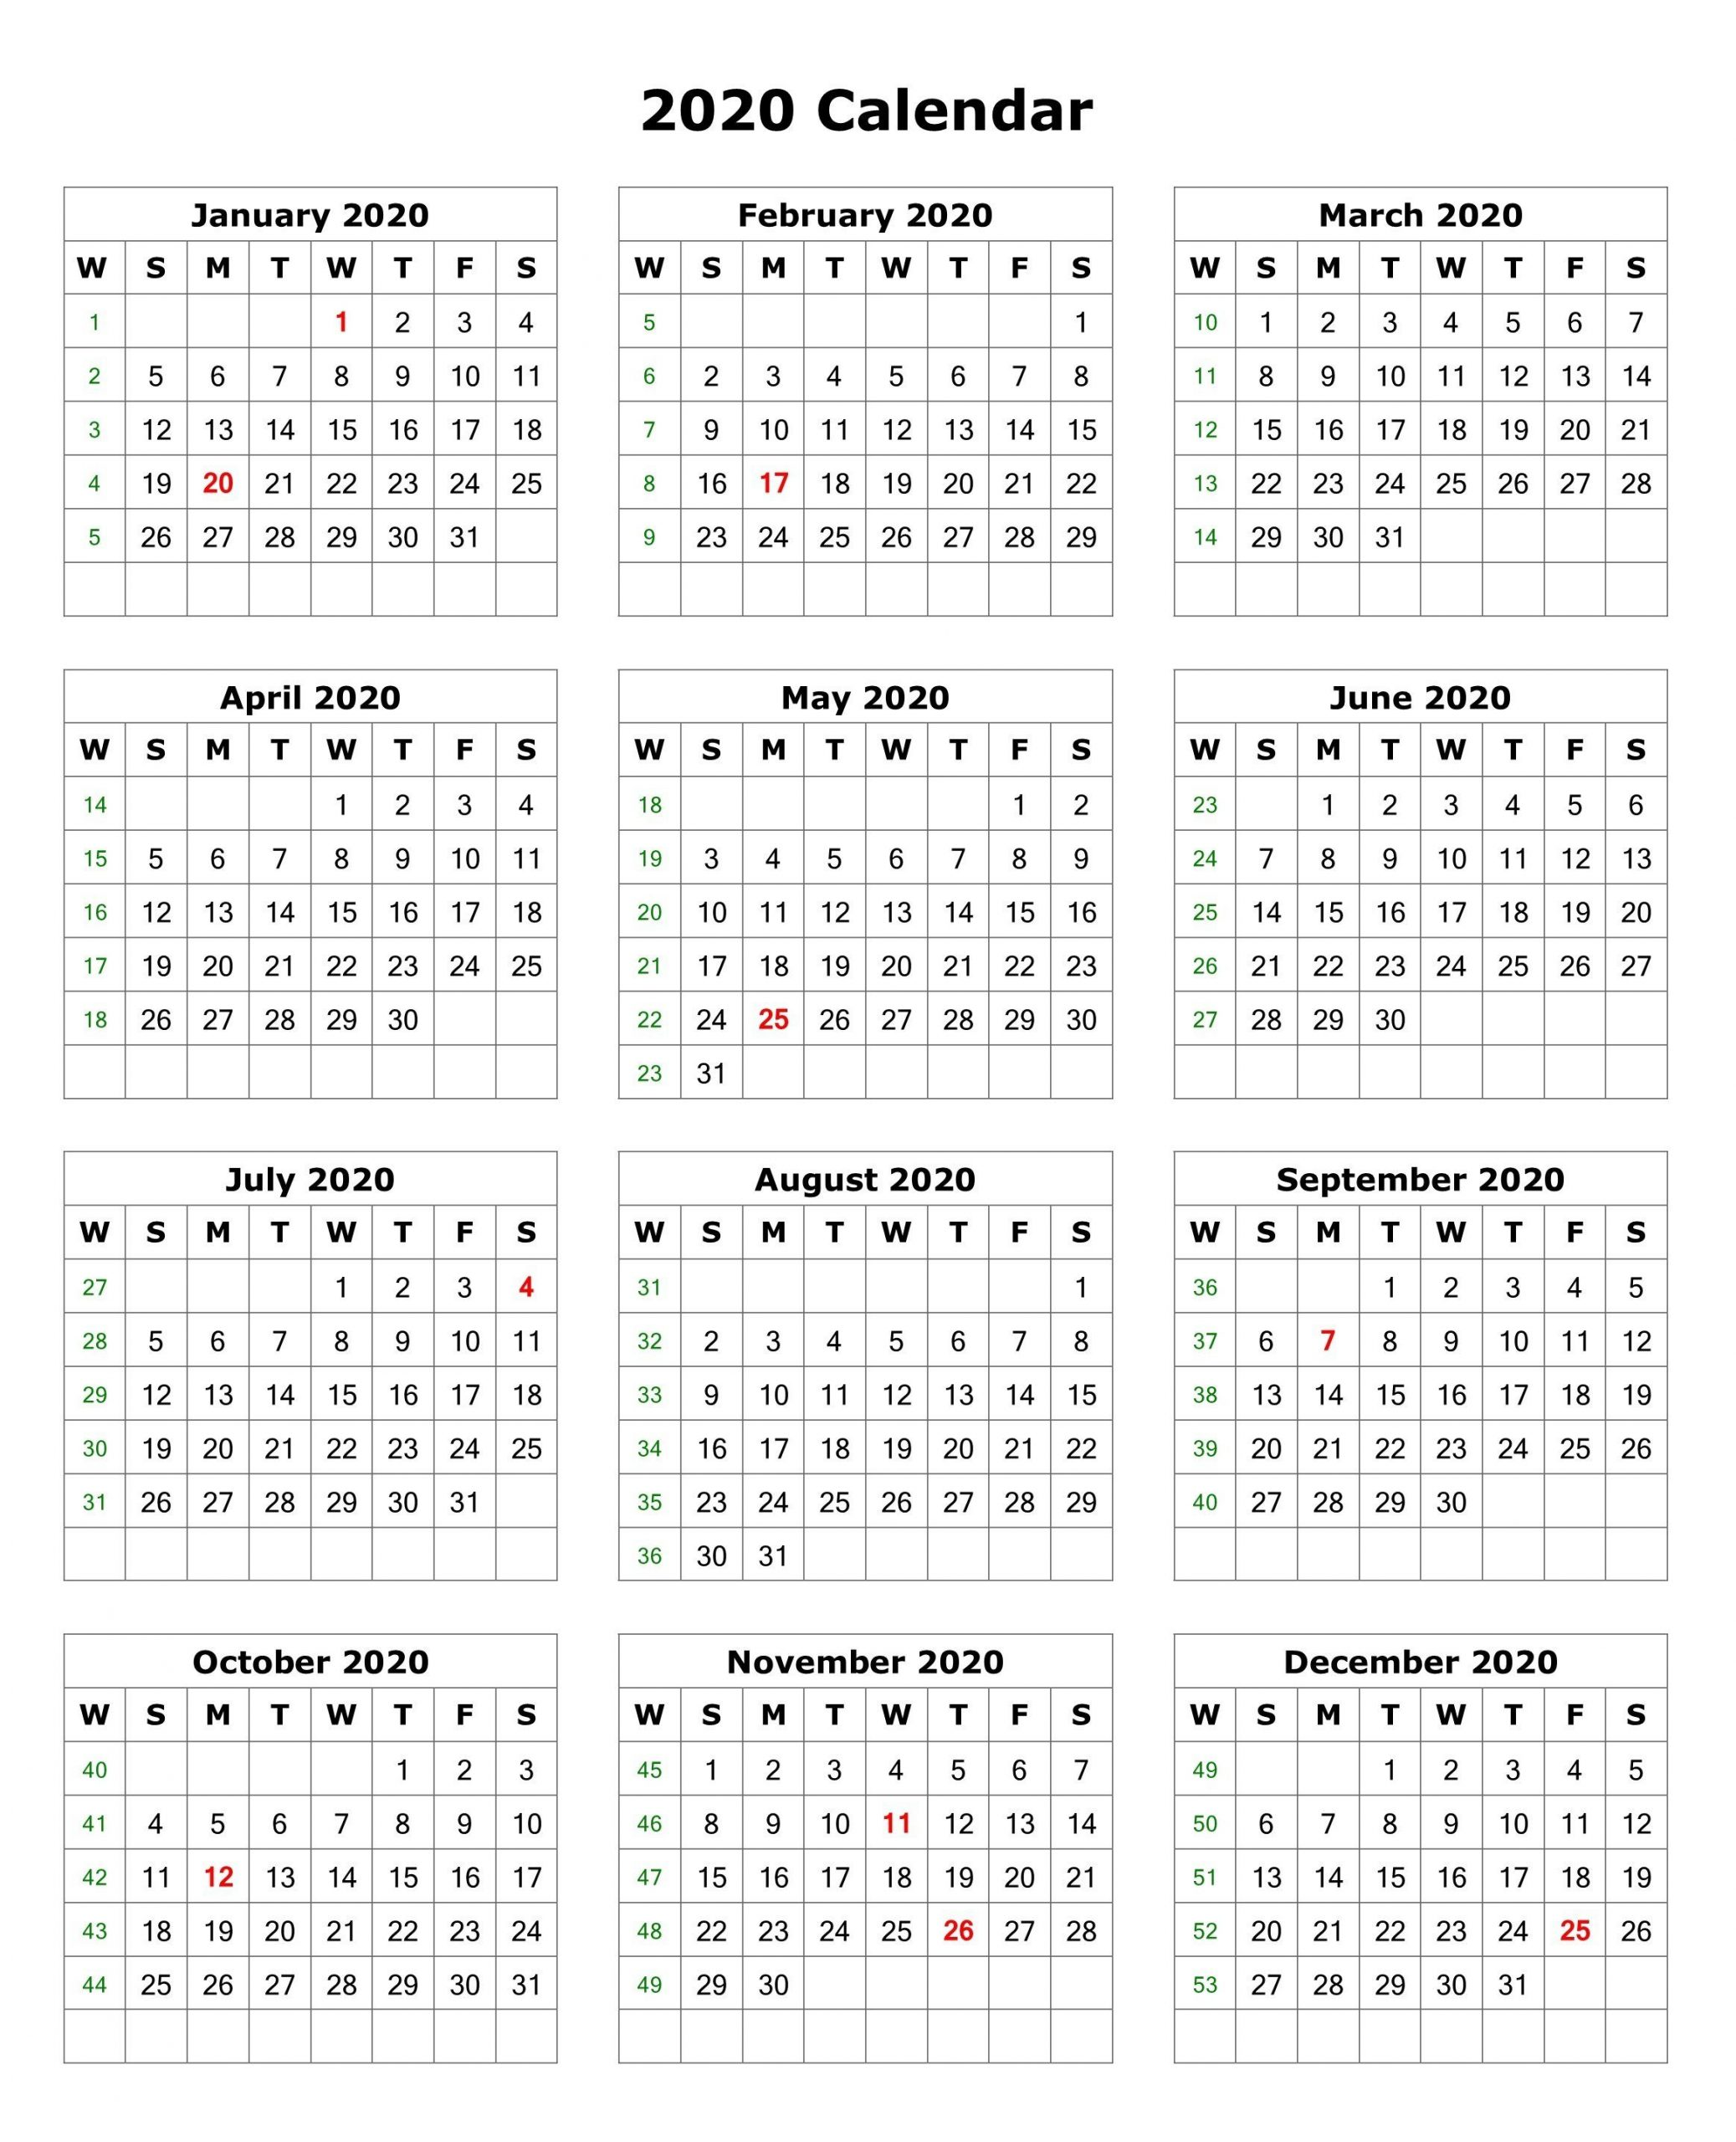 January To December 2020 Calendar in One Page